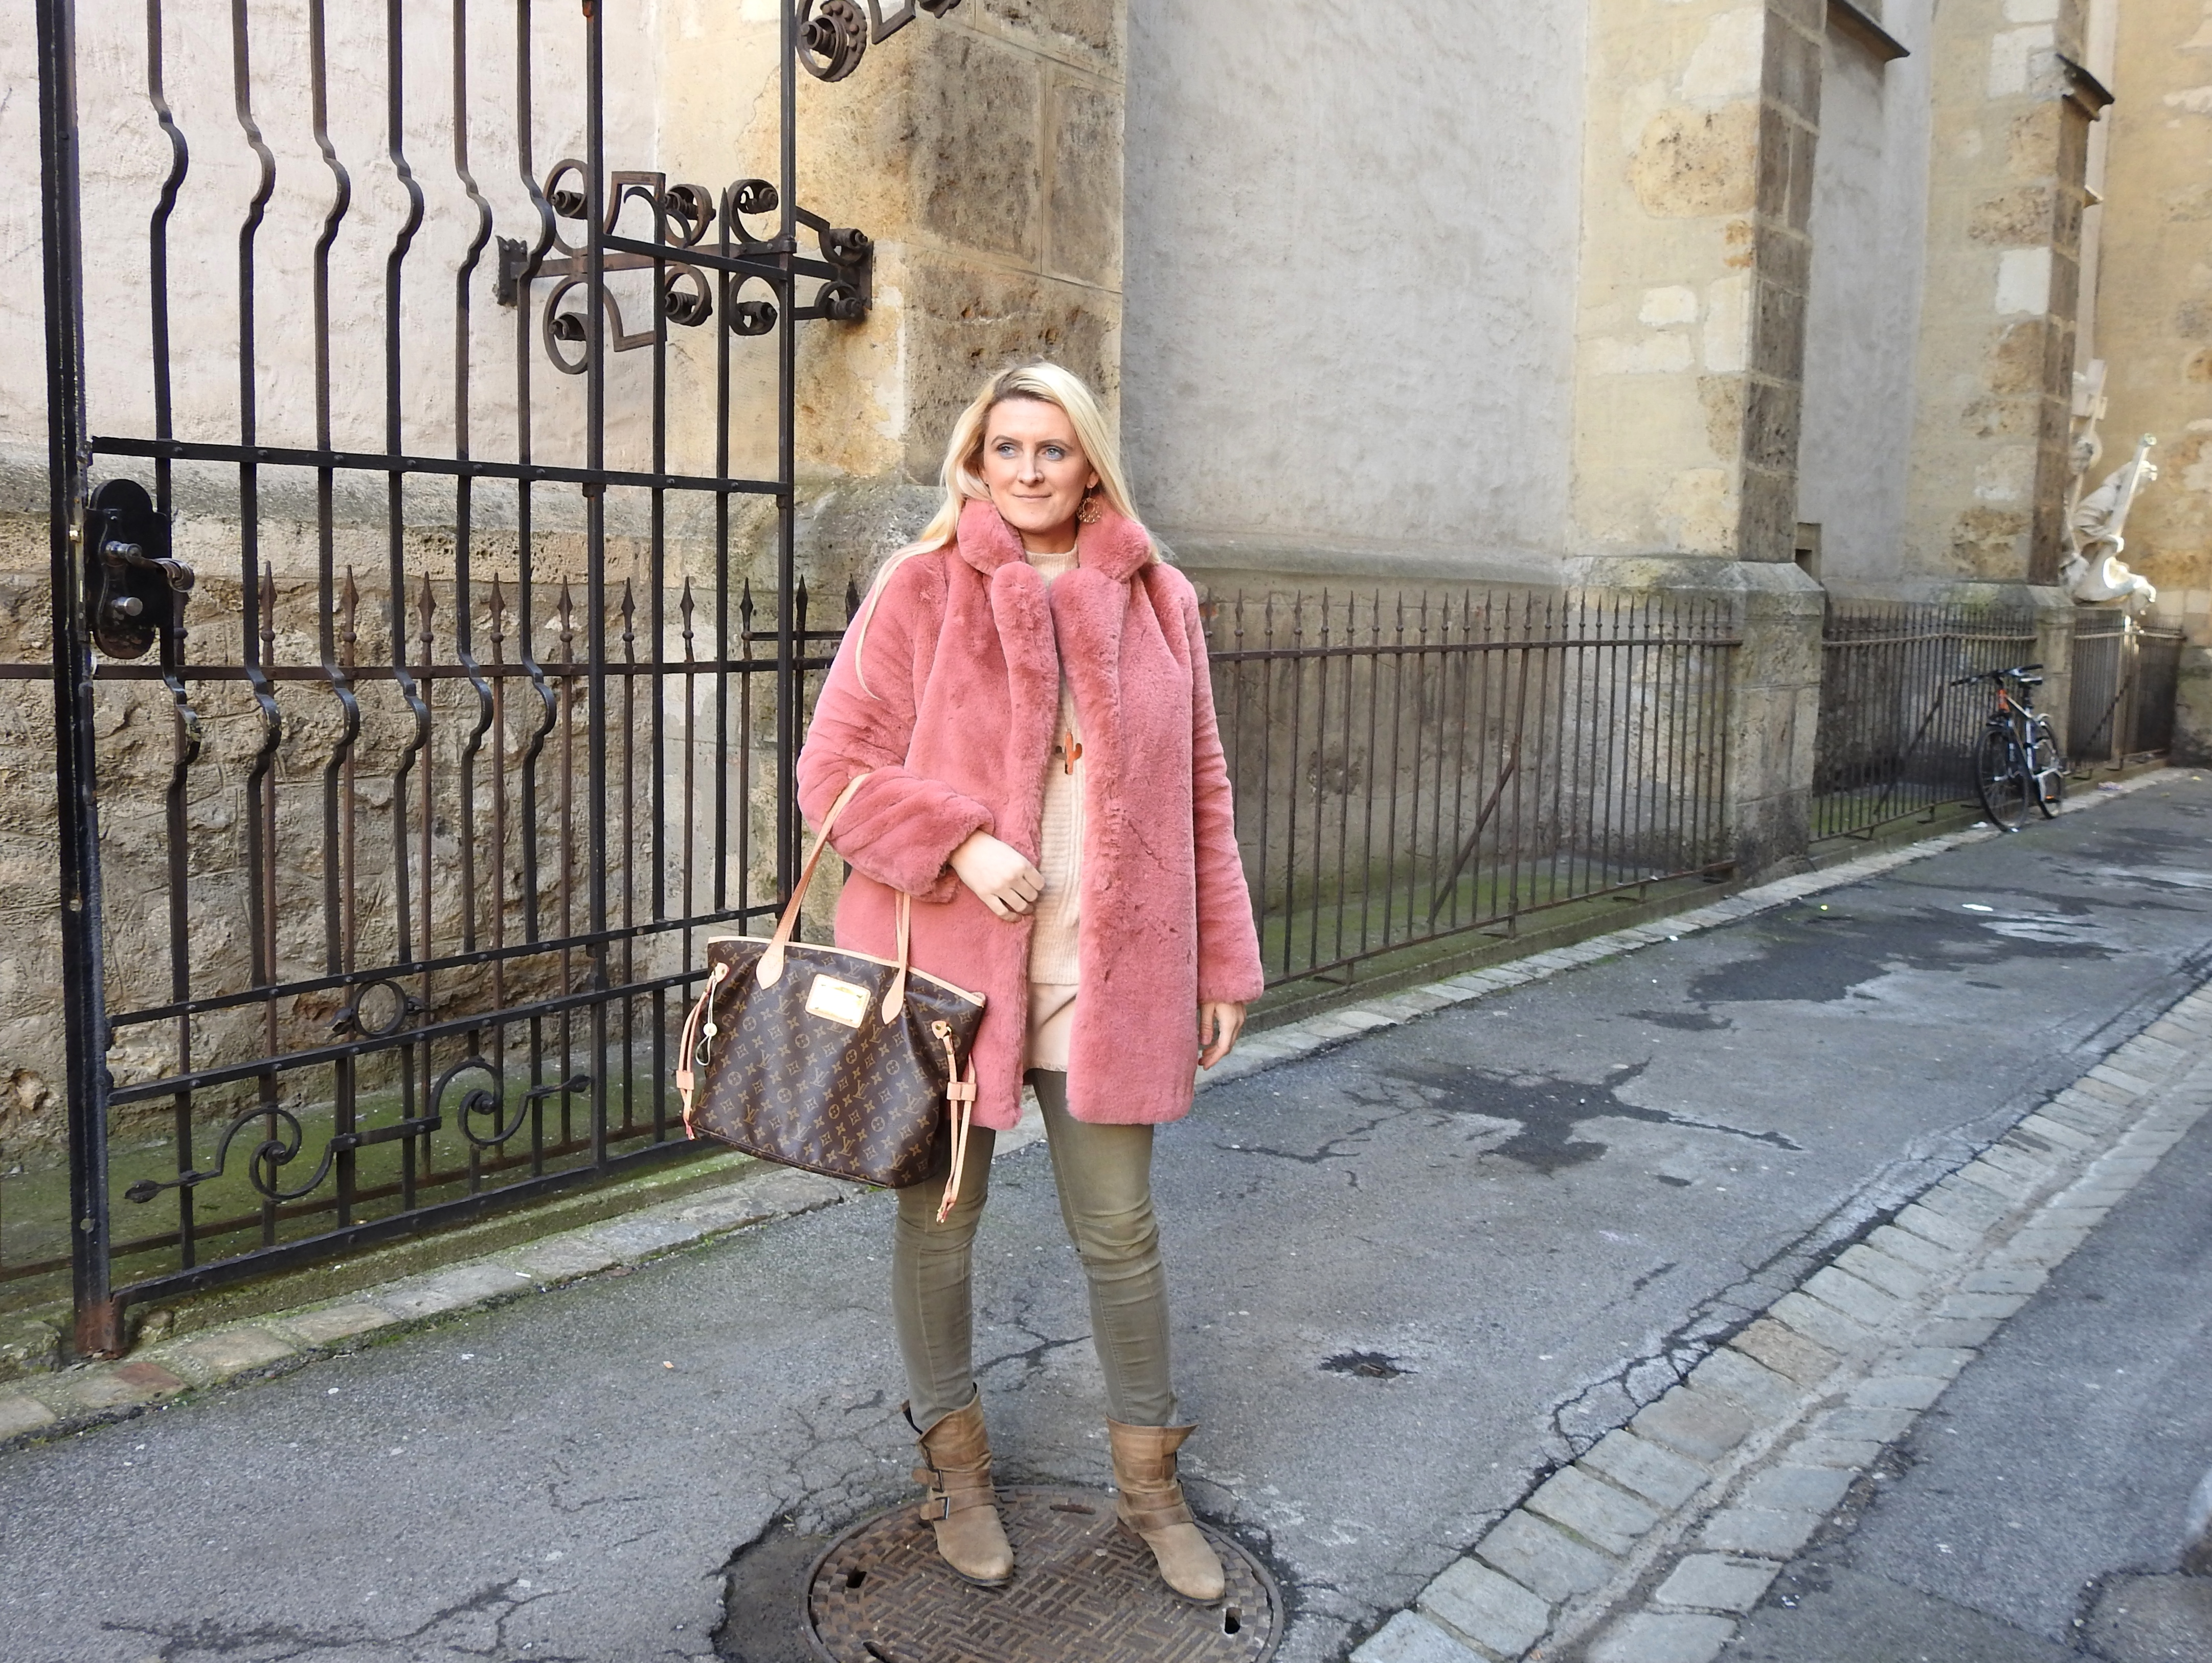 Fake-Fur-Coat-Pink-Denim-carrieslifestyle-Tamara-prutsch-Booties